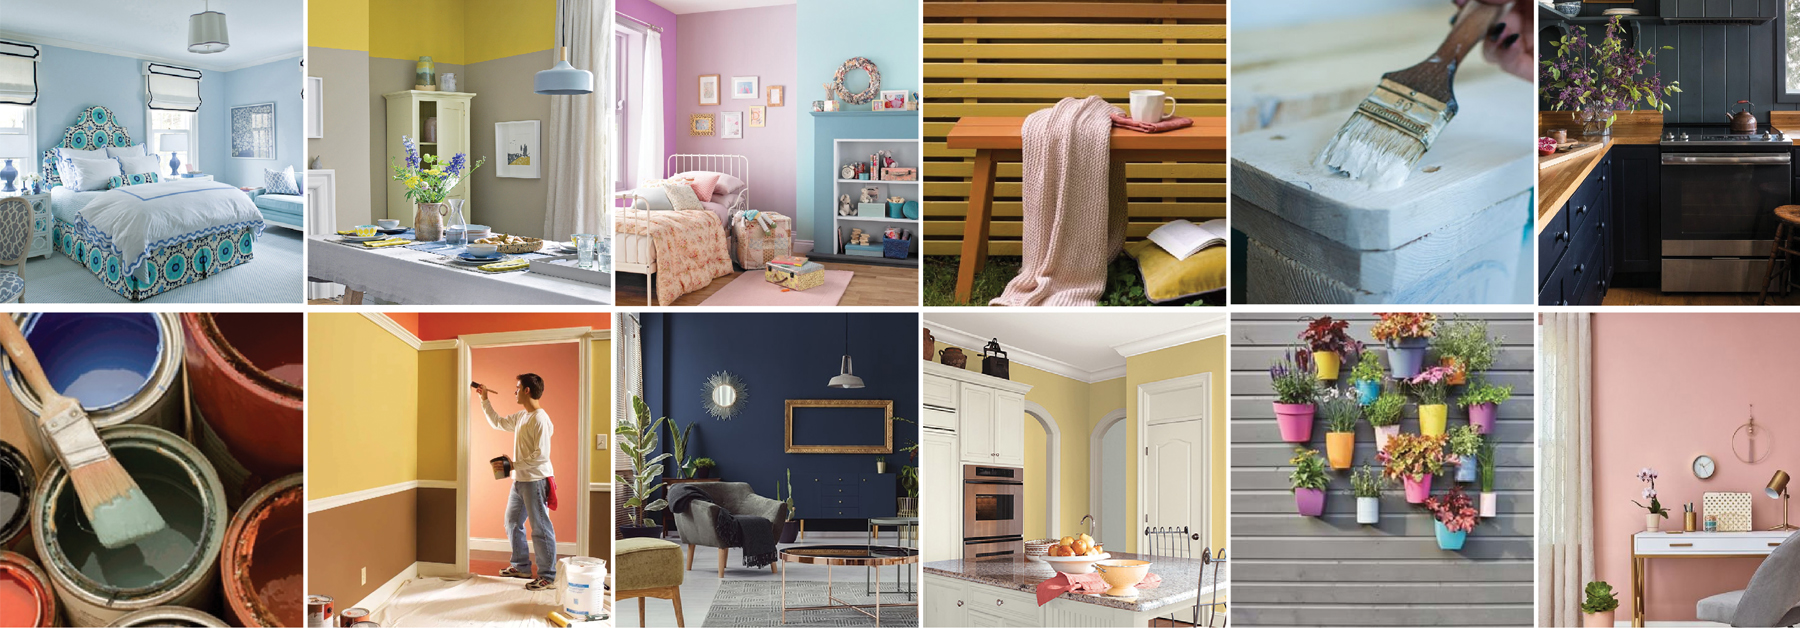 Irelands leading online paint shop with nationwide delivery. Follow the Paint Shack online for more inspiration.